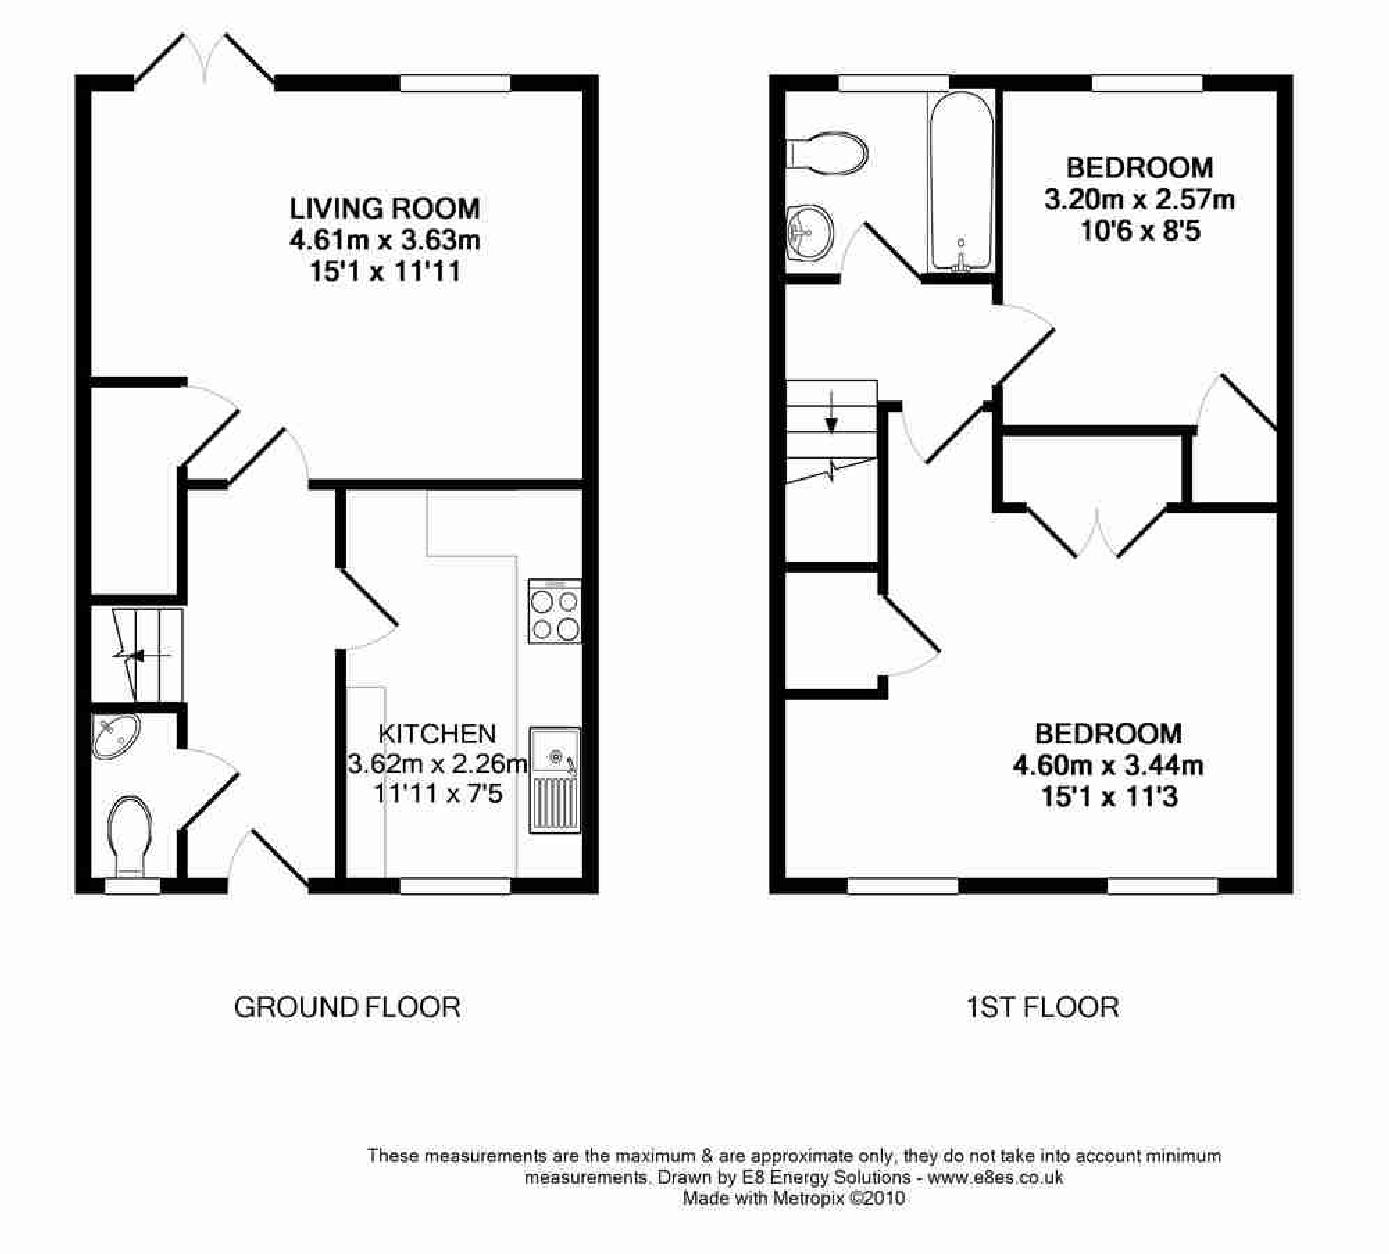 2 bedroom house plans uk house design plans for Floor plans 2 bedroom